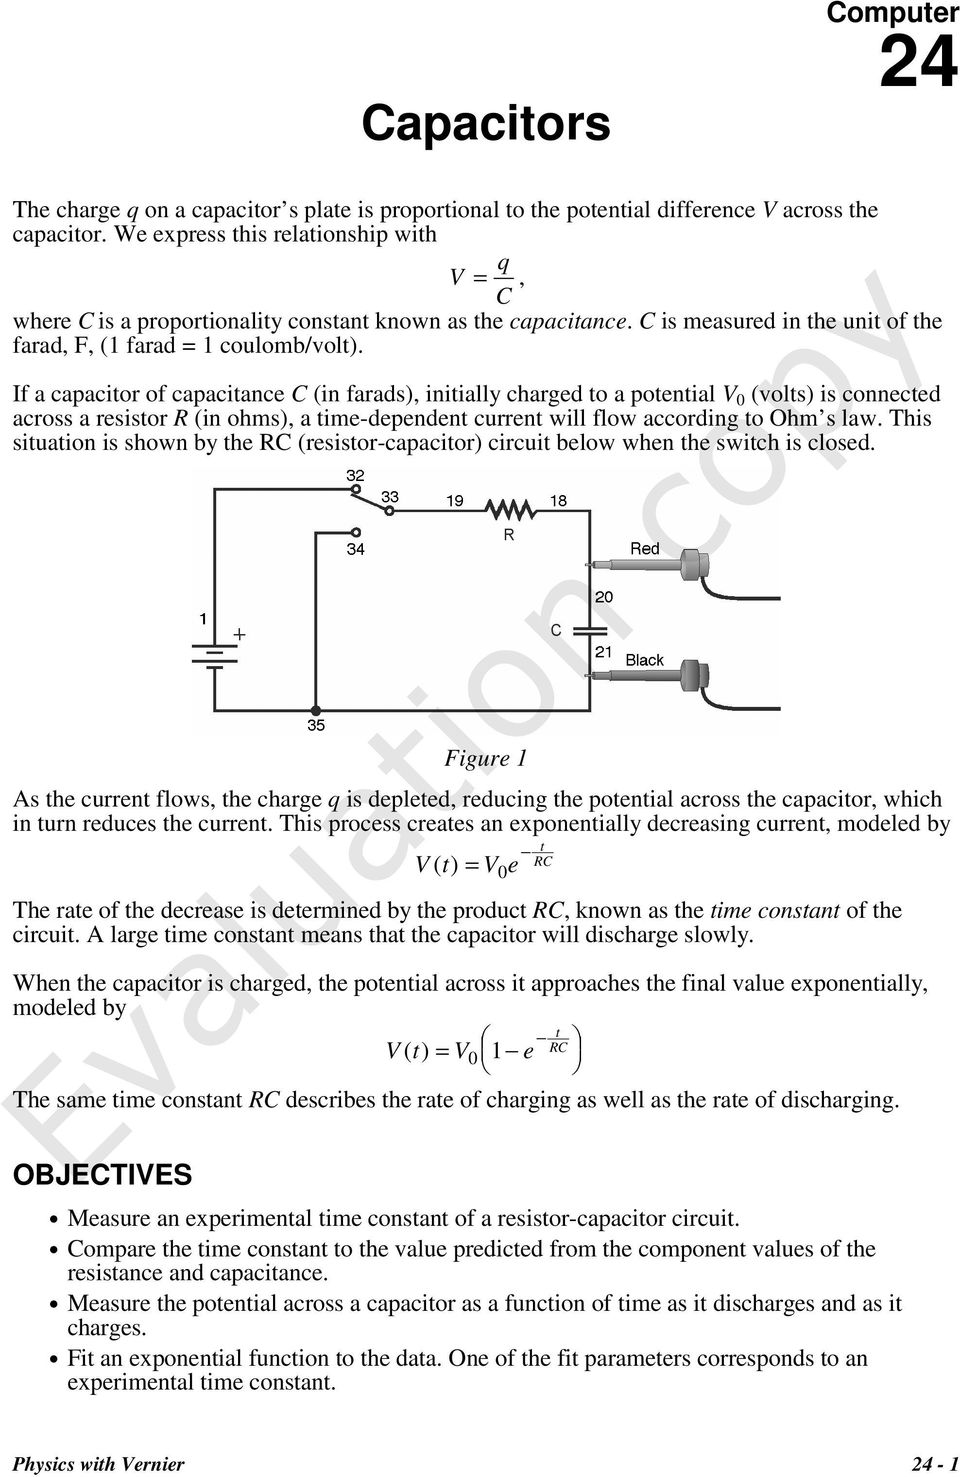 Capacitors Evaluation Copy Pdf The Circuit Below Along With Current Flowing And Potential If A Capacitor Of Capacitance C In Farads Initially Charged To